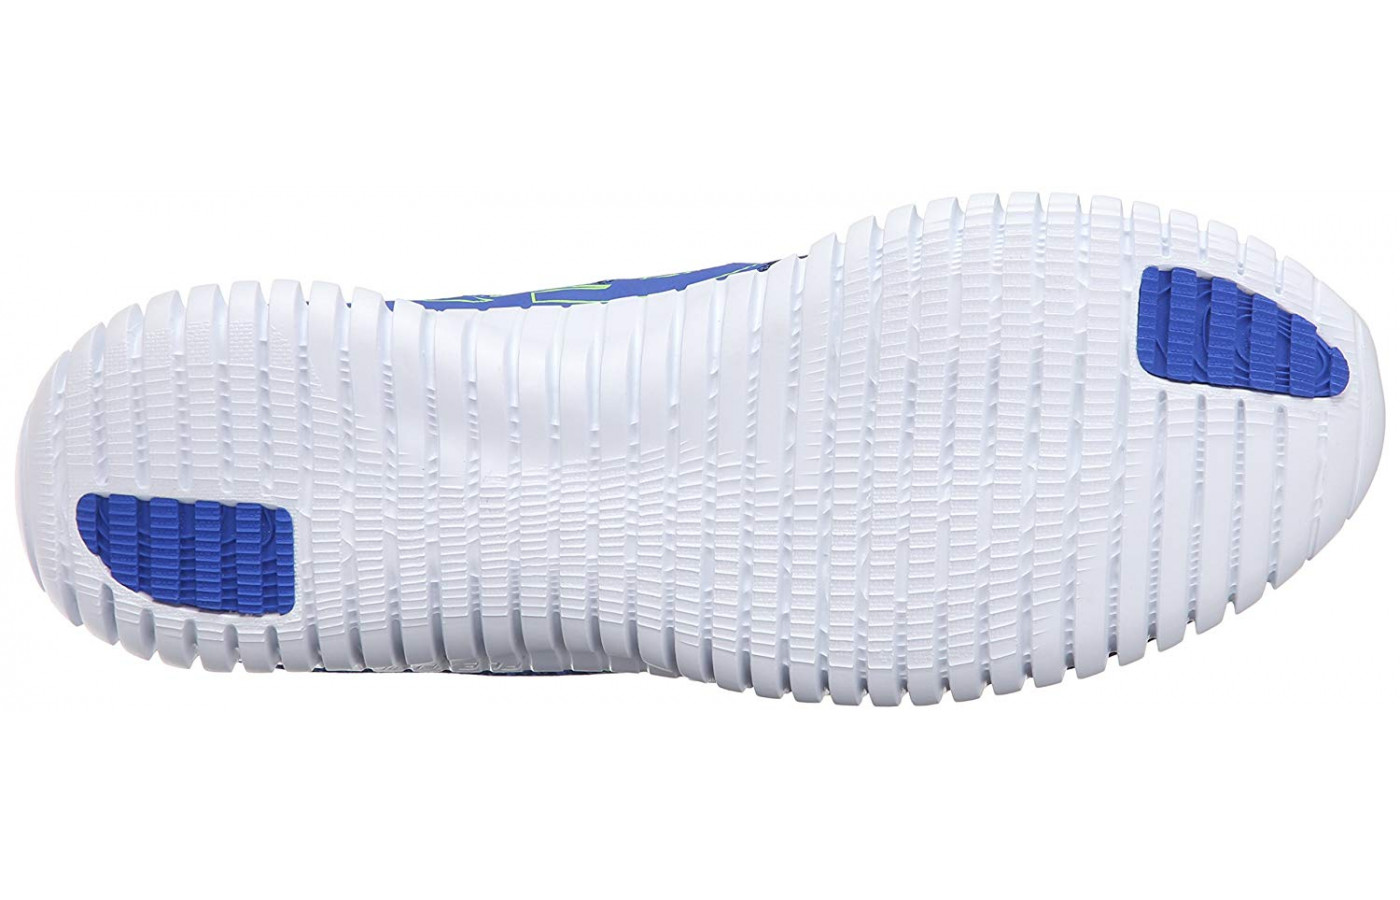 The outsole is lined with multiple flex grooves